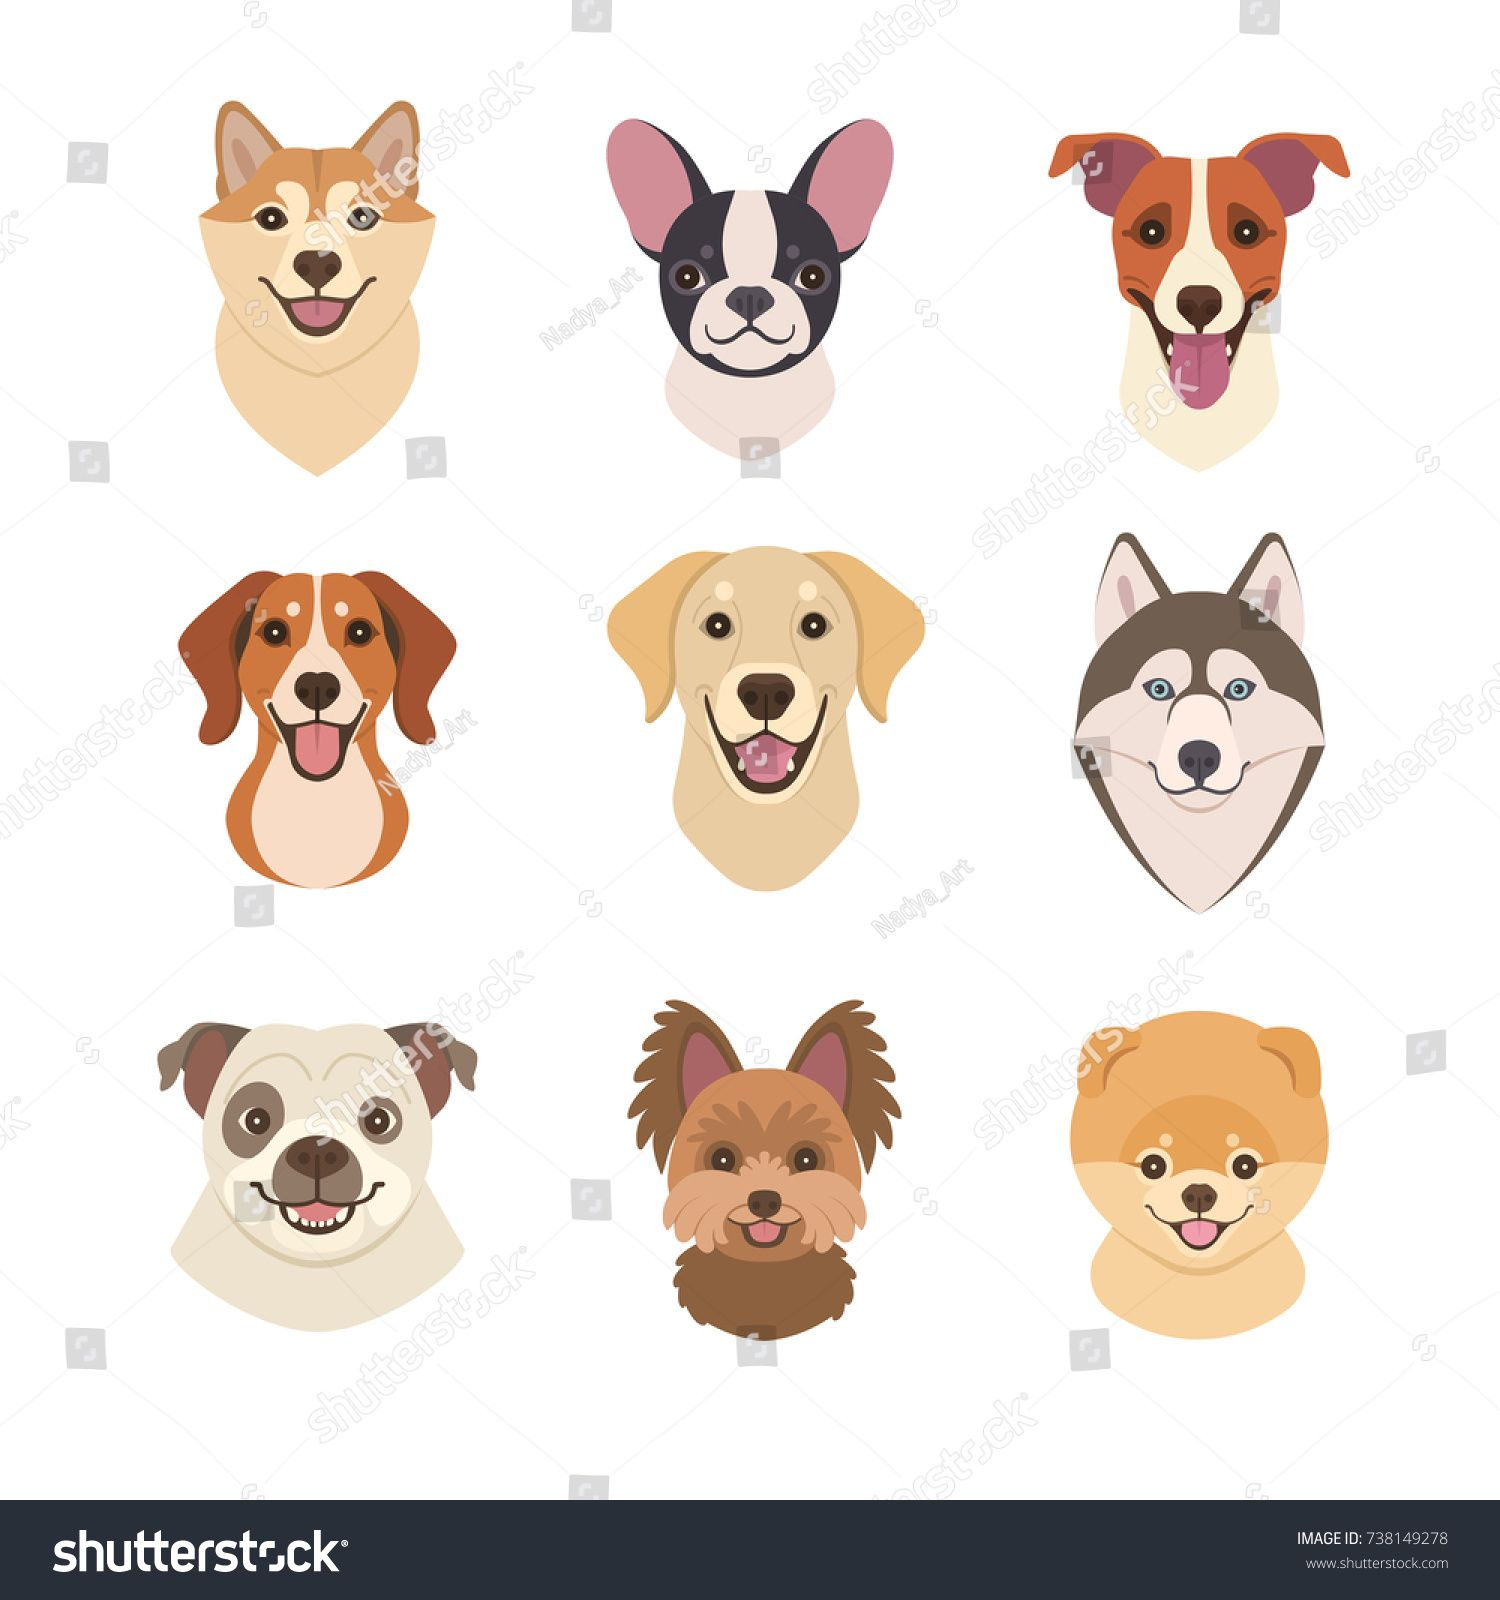 Pictures Of Cartoon Dog Faces